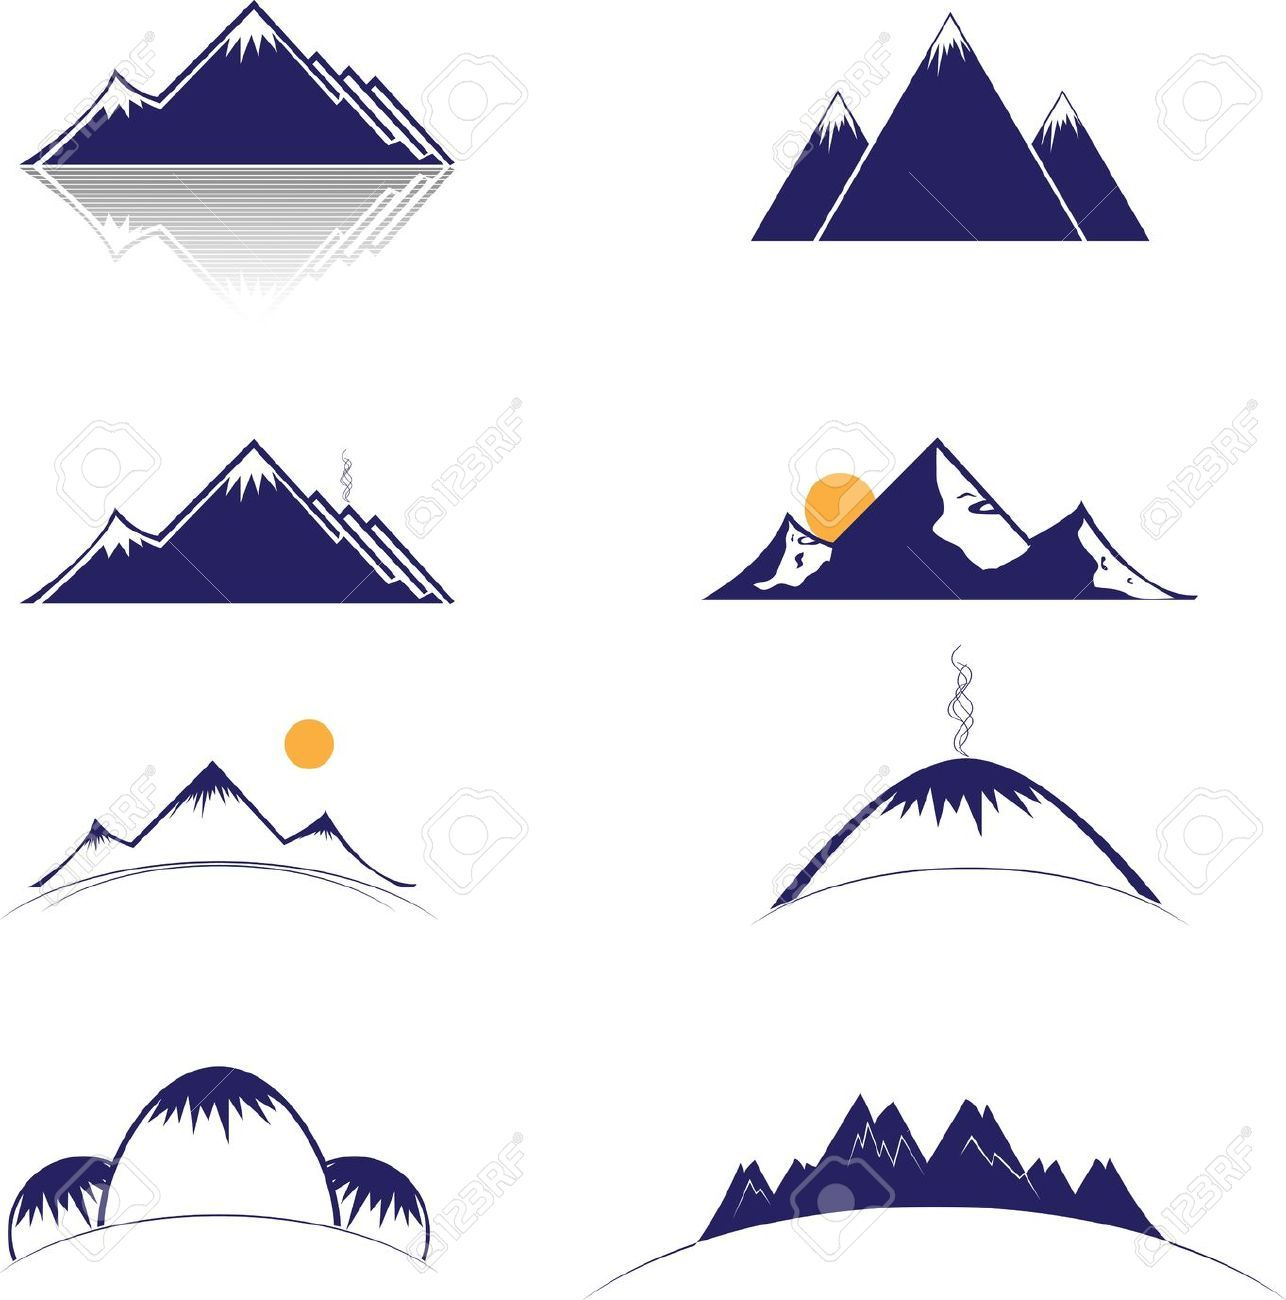 Tattoos arabesque tattoos arabeske tattoos arabesk tattoos - Popular Tattoo Design See More Mountainscape Vector Google Search